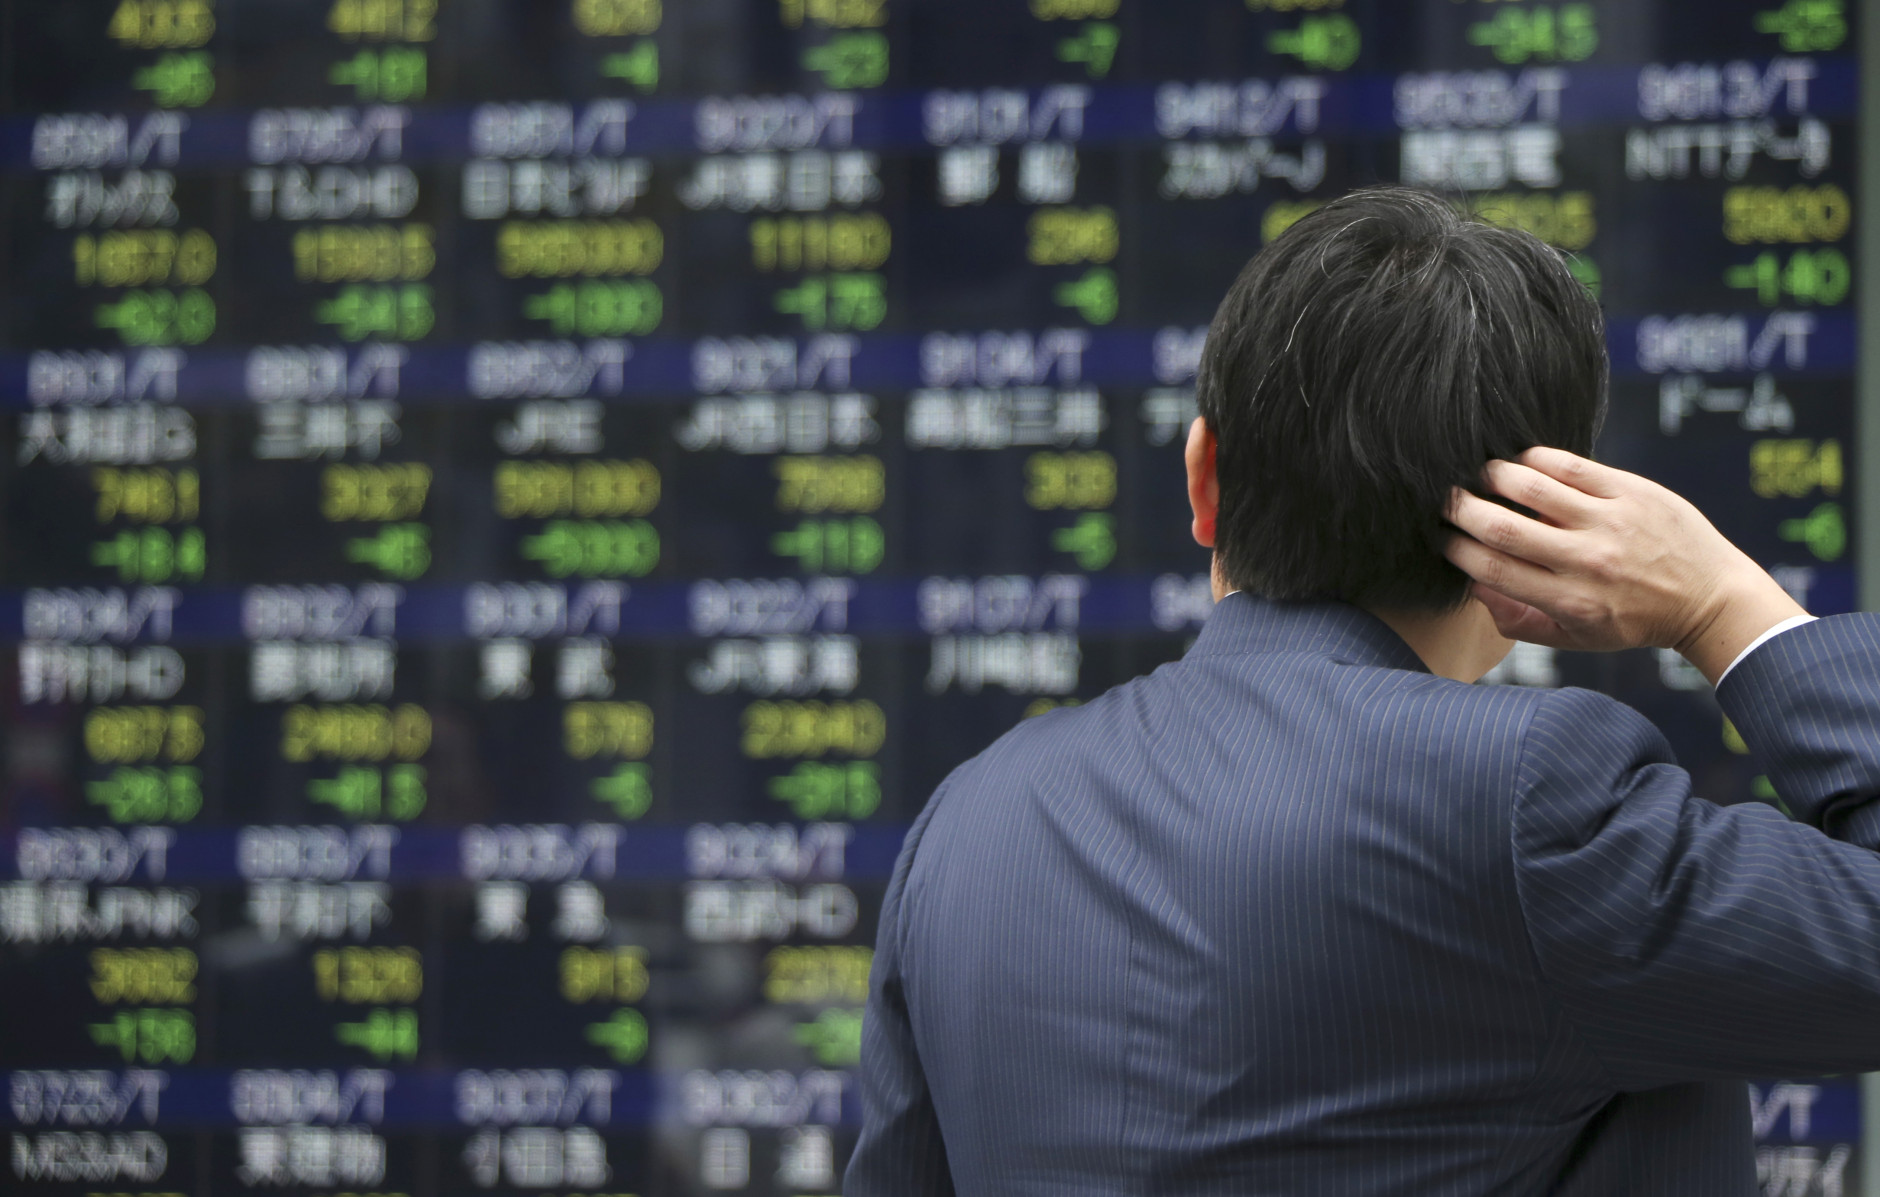 A man looks at an electronic stock board of a securities firm in Tokyo, Monday, Dec. 14, 2015. Asian stock markets were mostly lower Monday following Wall Street's losses as investors awaited the U.S. Federal Reserve's decision this week on whether to go ahead with an interest rate hike. (AP Photo/Koji Sasahara)